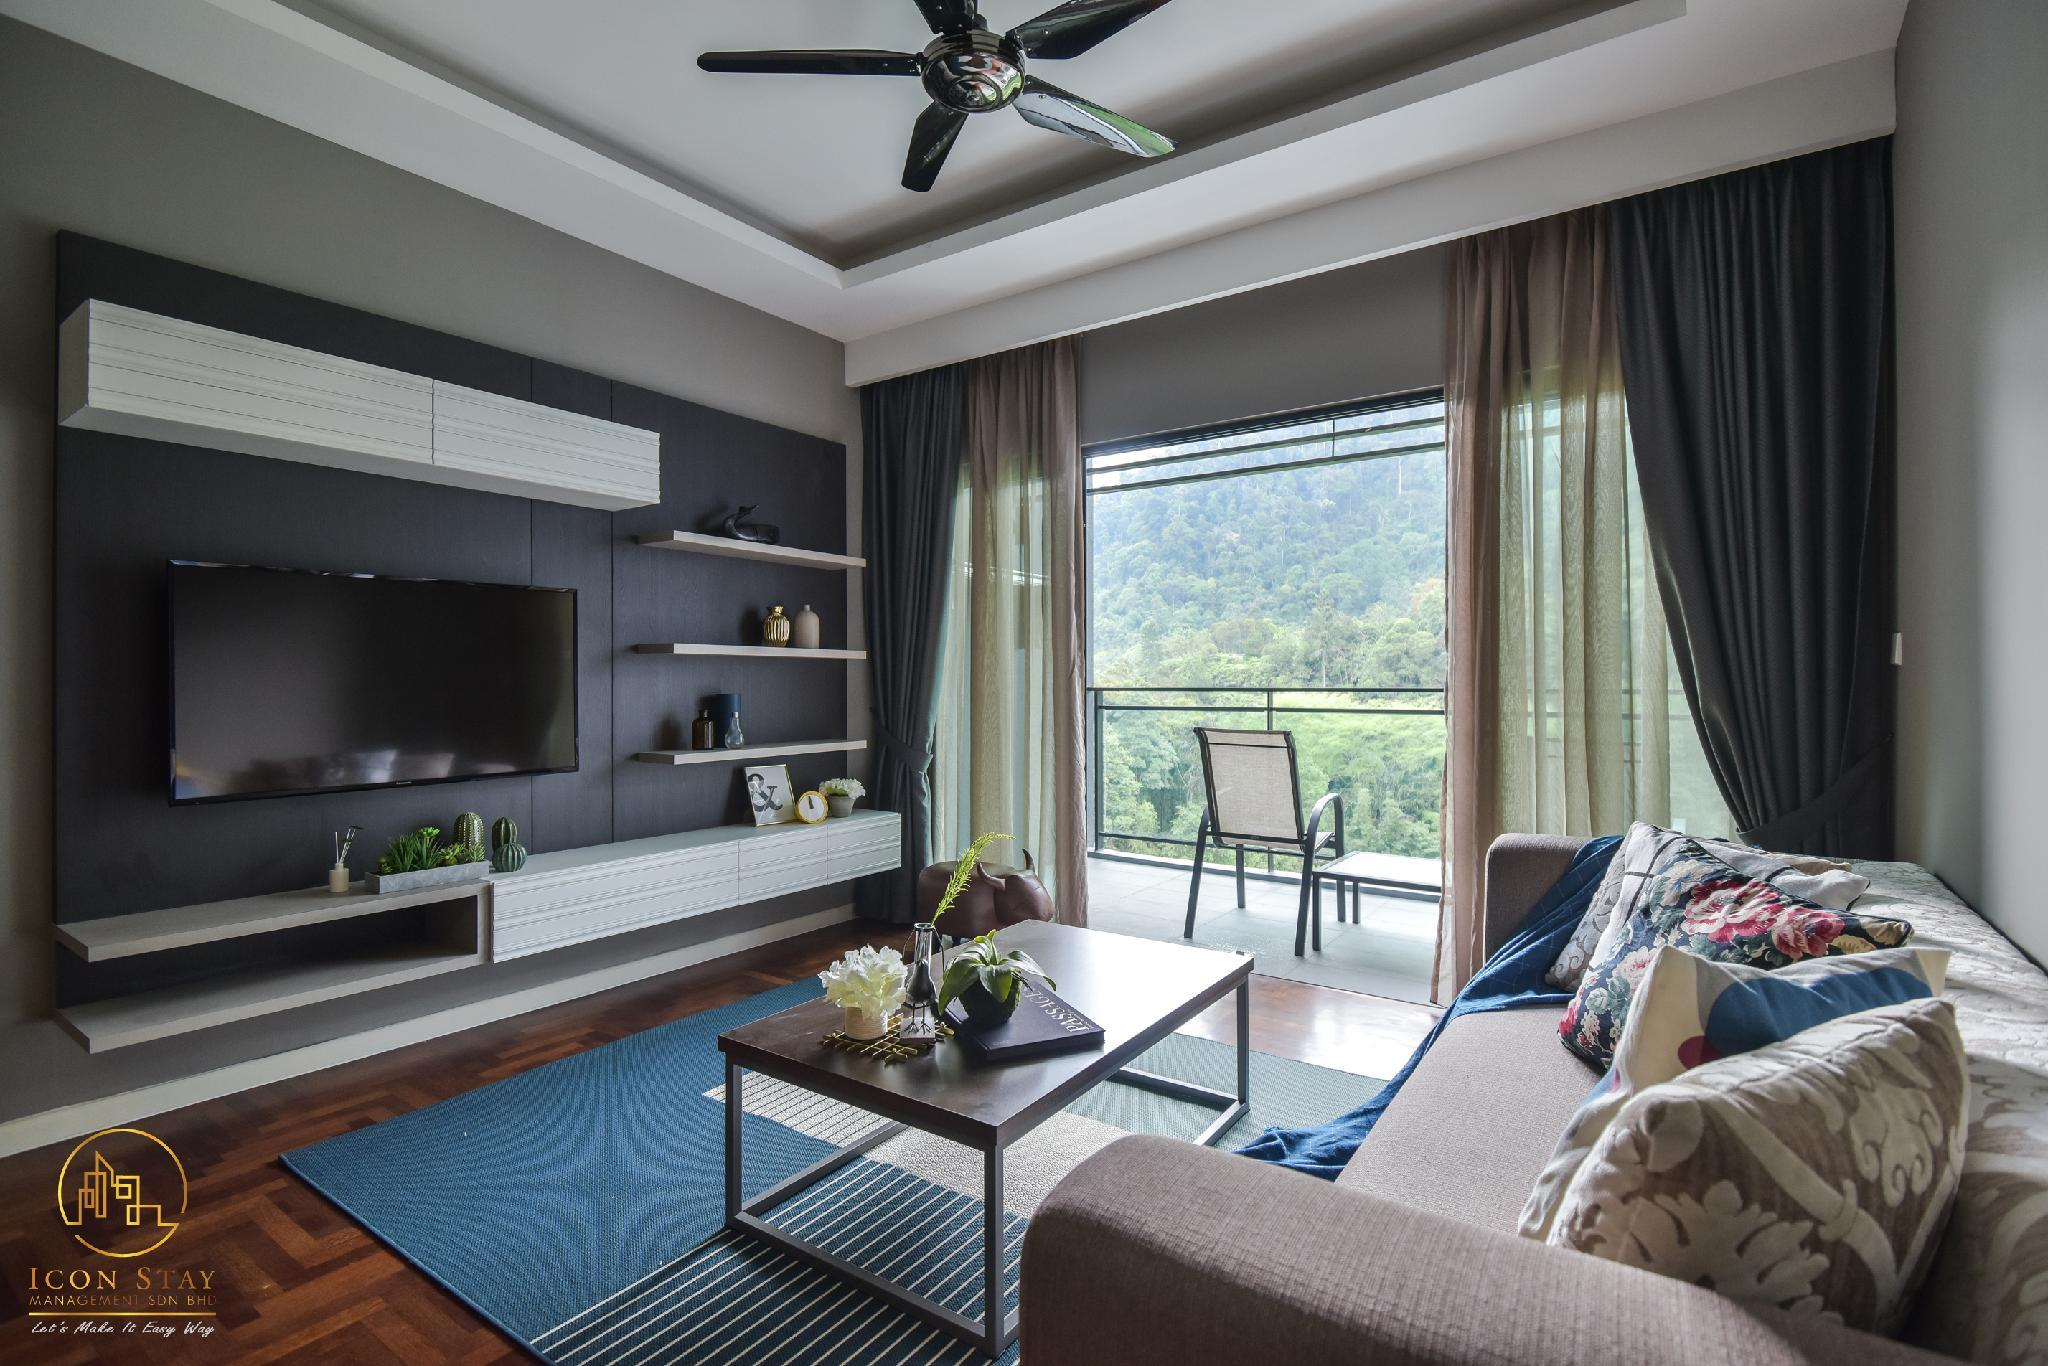 Vista Residences Genting Highlands @ Icon Stay, Bentong